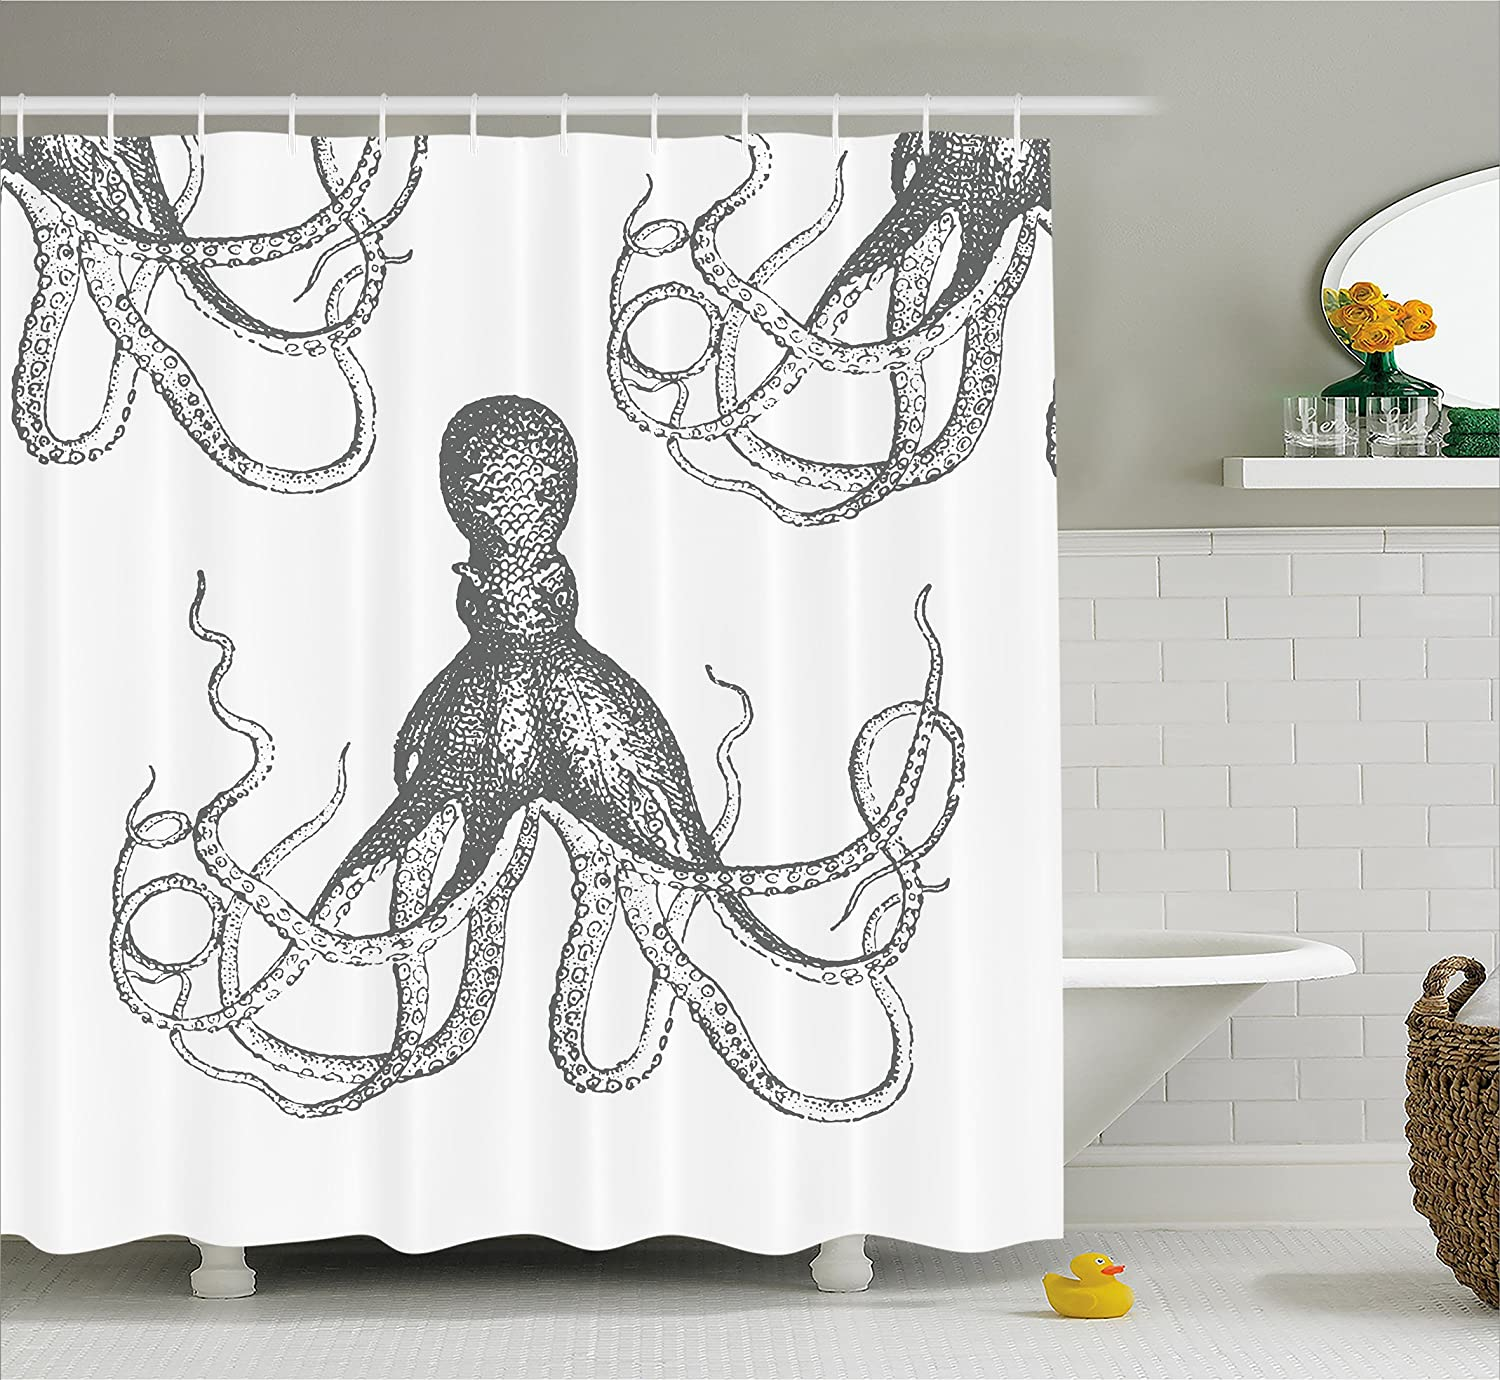 Kraken shower curtain - Amazon Com Kraken Decor Shower Curtain By Ambesonne Sea Creatures Giant Octopus With Swirl Legs Nautical Theme Art Design Modern Print Fabric Bathroom